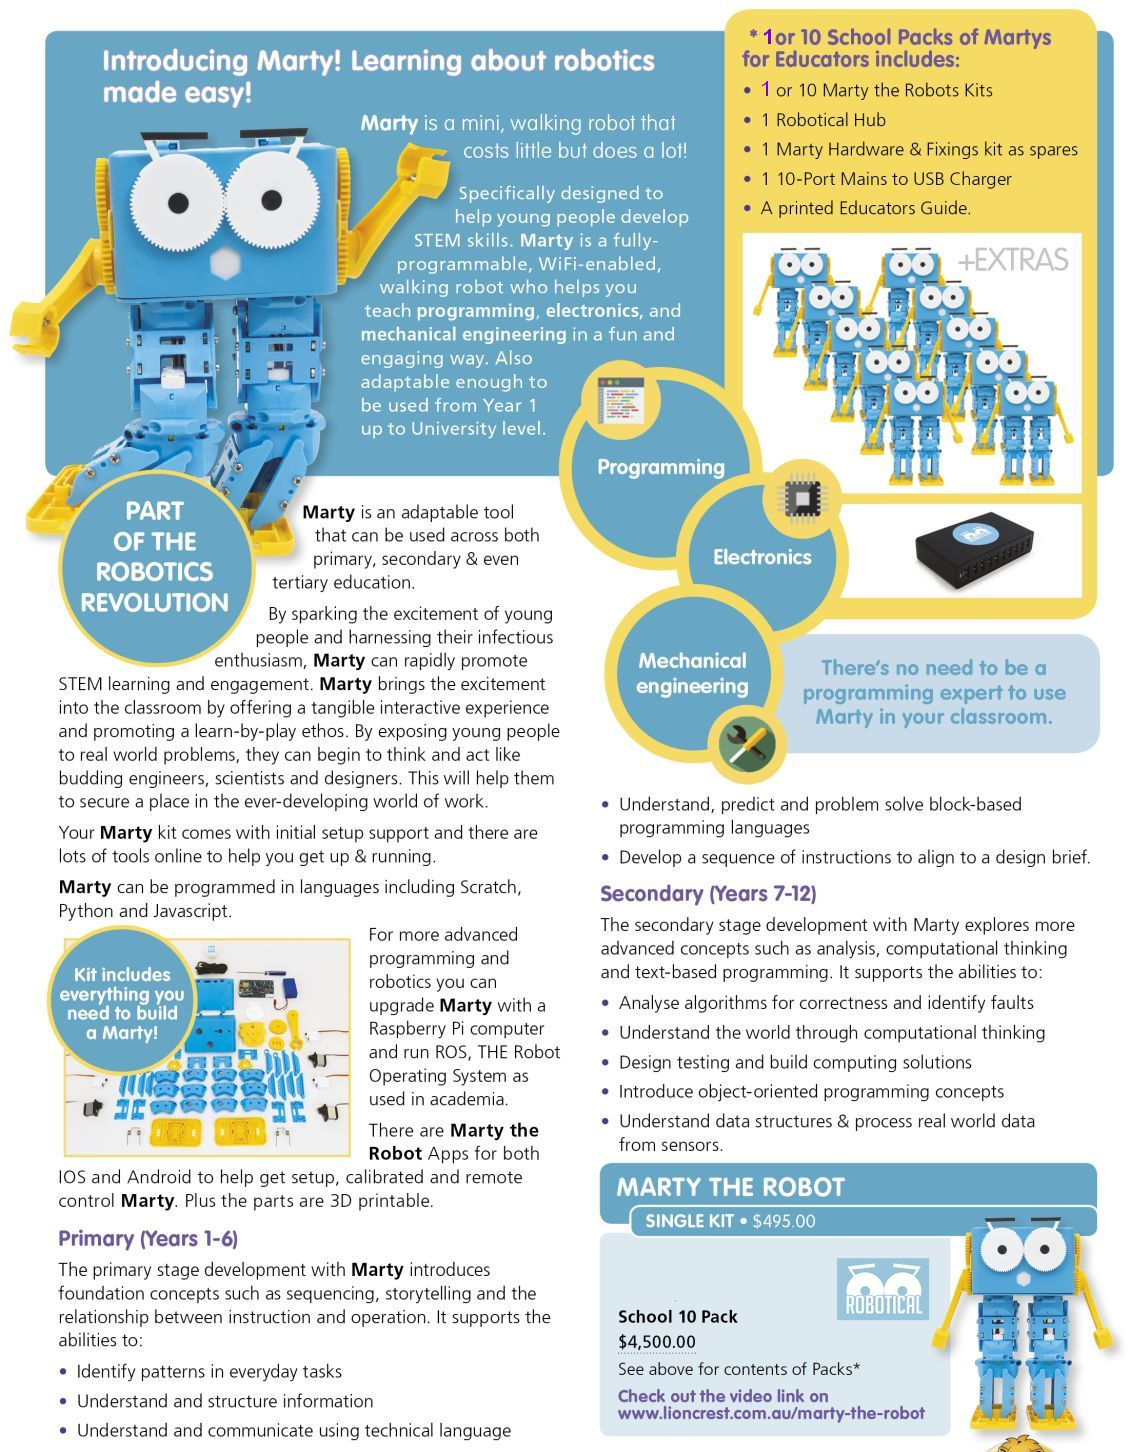 MARTY_p163-2 Marty the Robot  |  Stem Kits Technology ict Resources |  Lioncrest Education